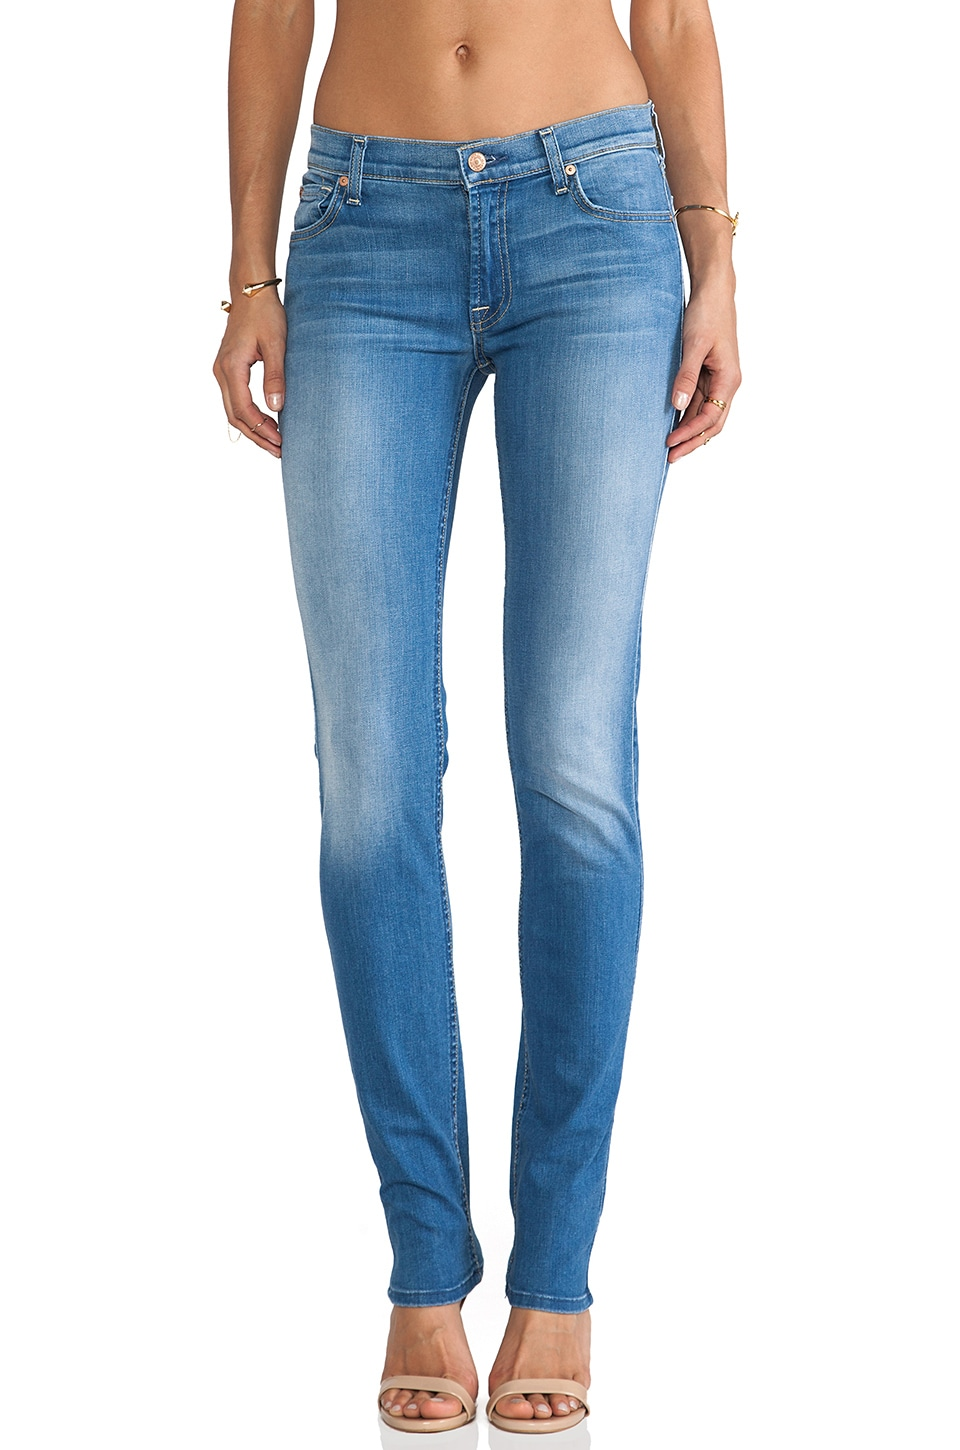 7 For All Mankind Roxanne in Dutch Blue